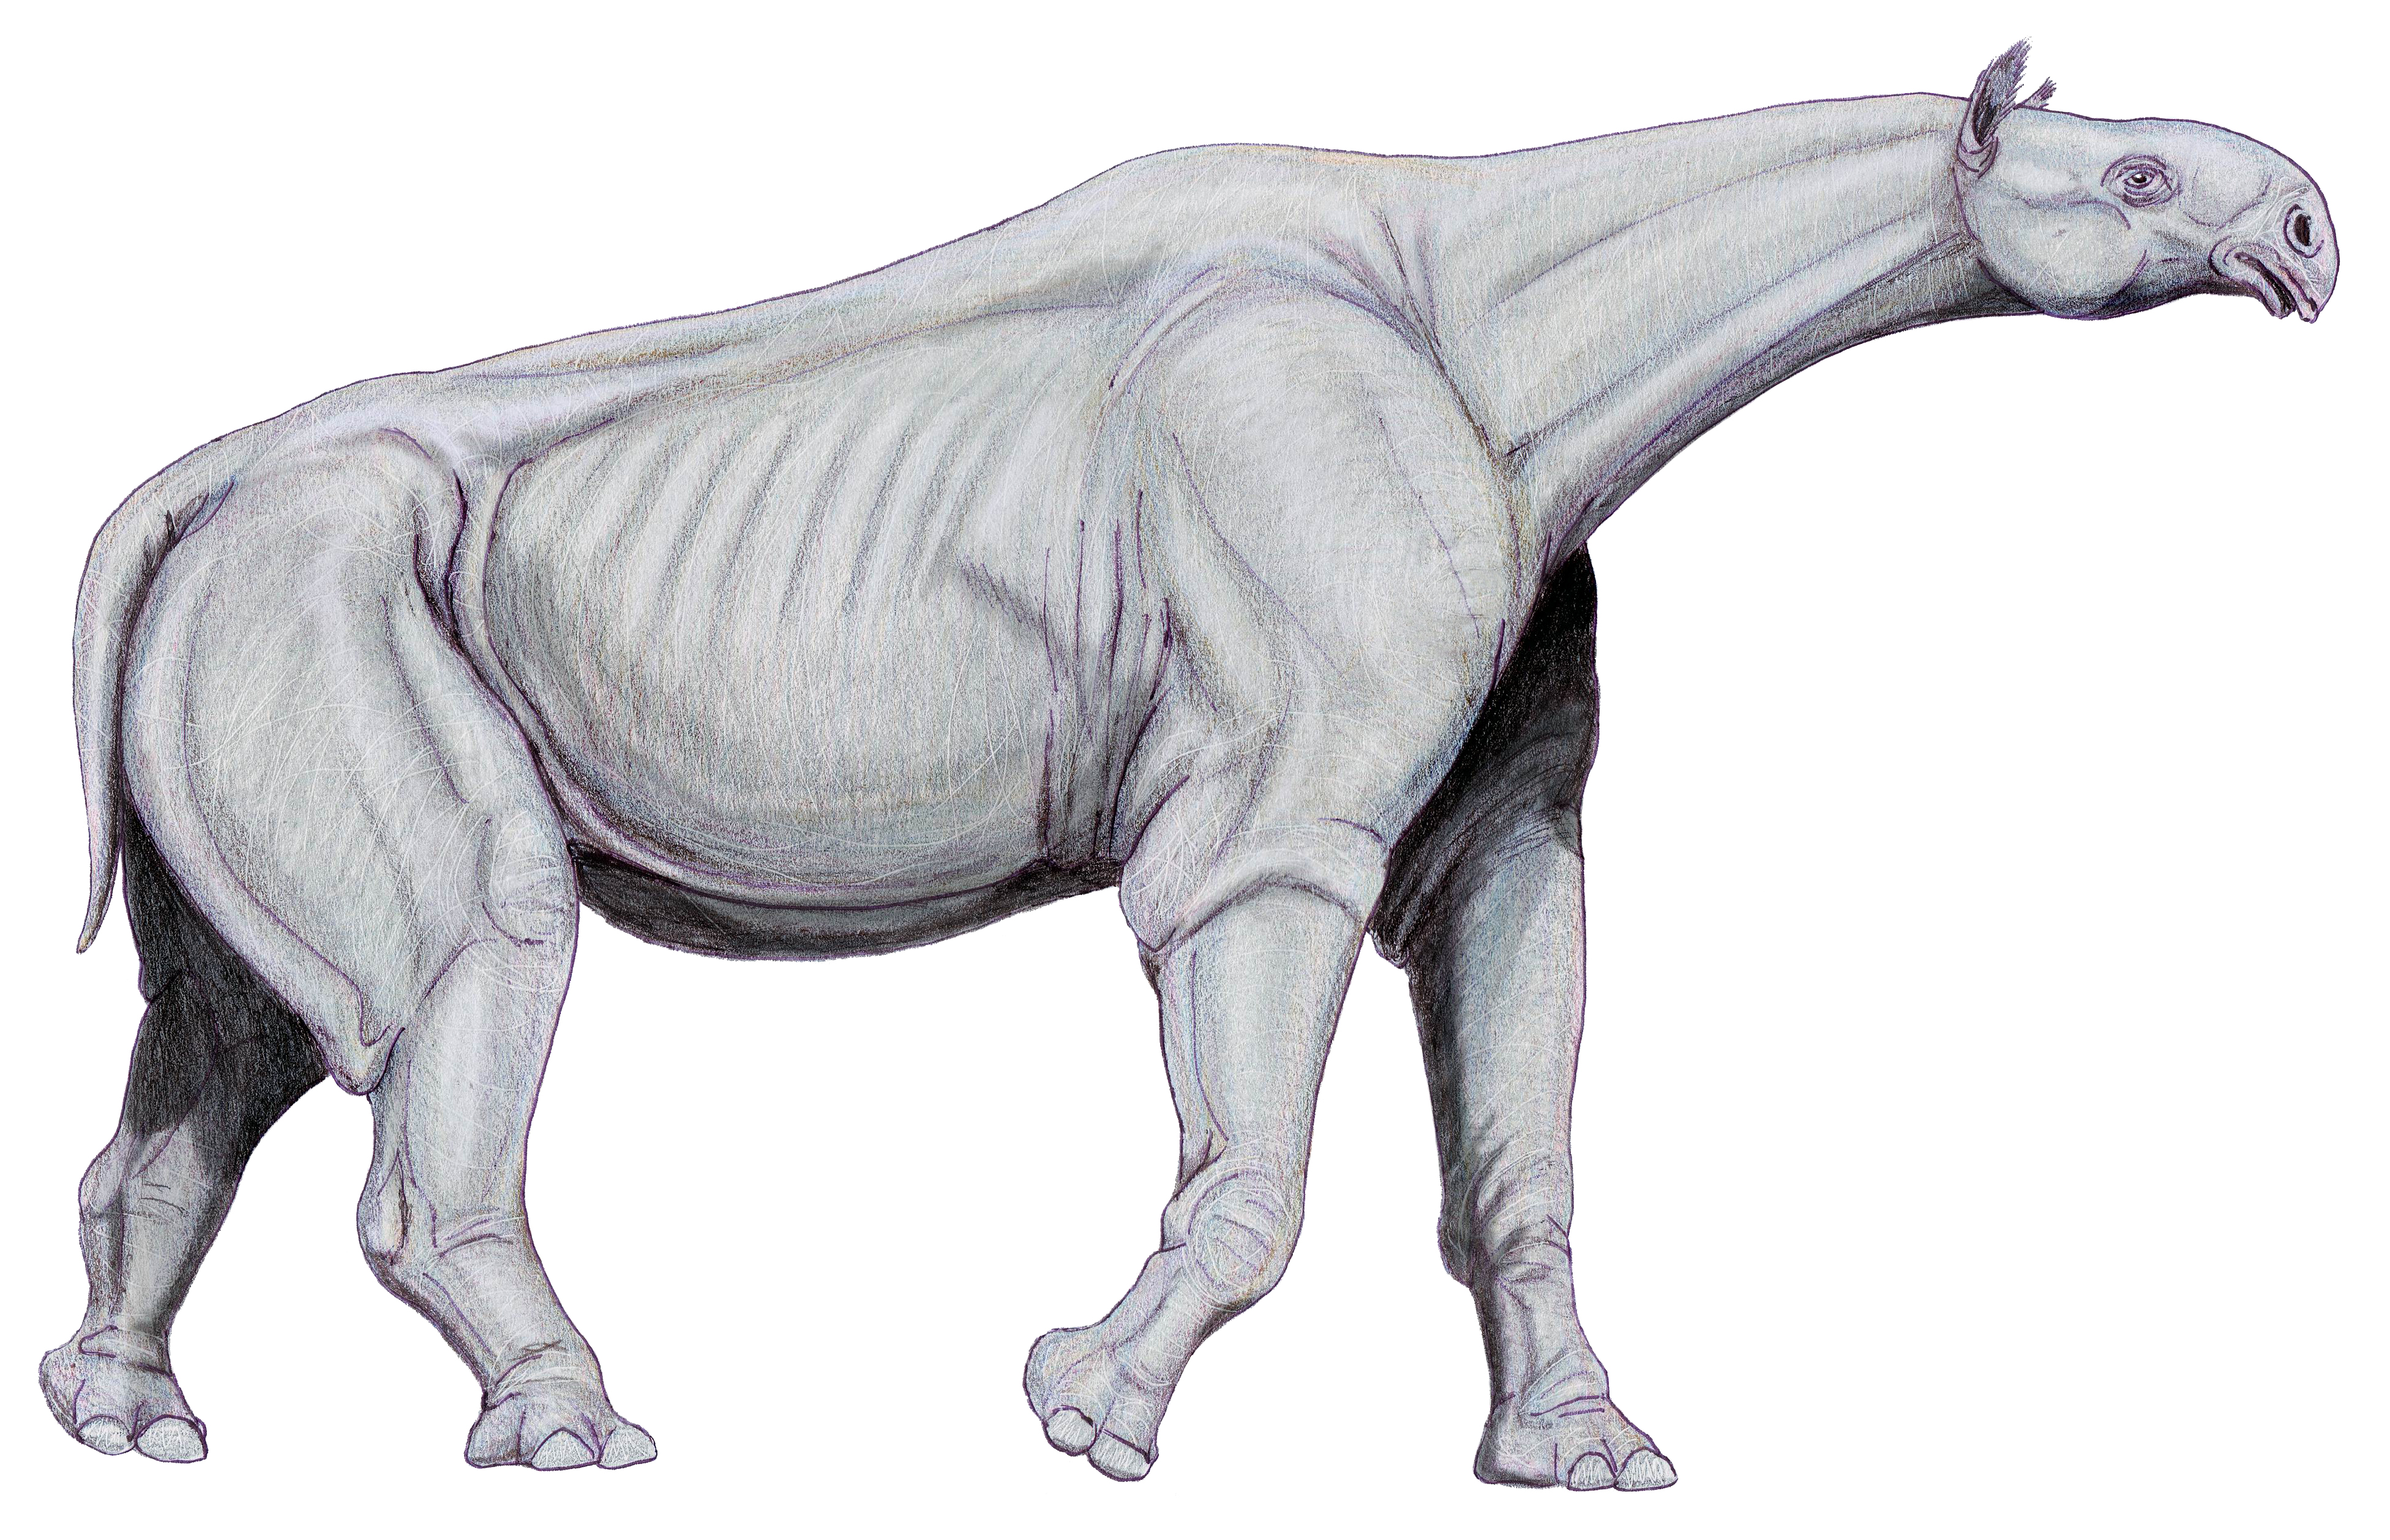 http://upload.wikimedia.org/wikipedia/commons/0/0f/Indricotherium11.jpg